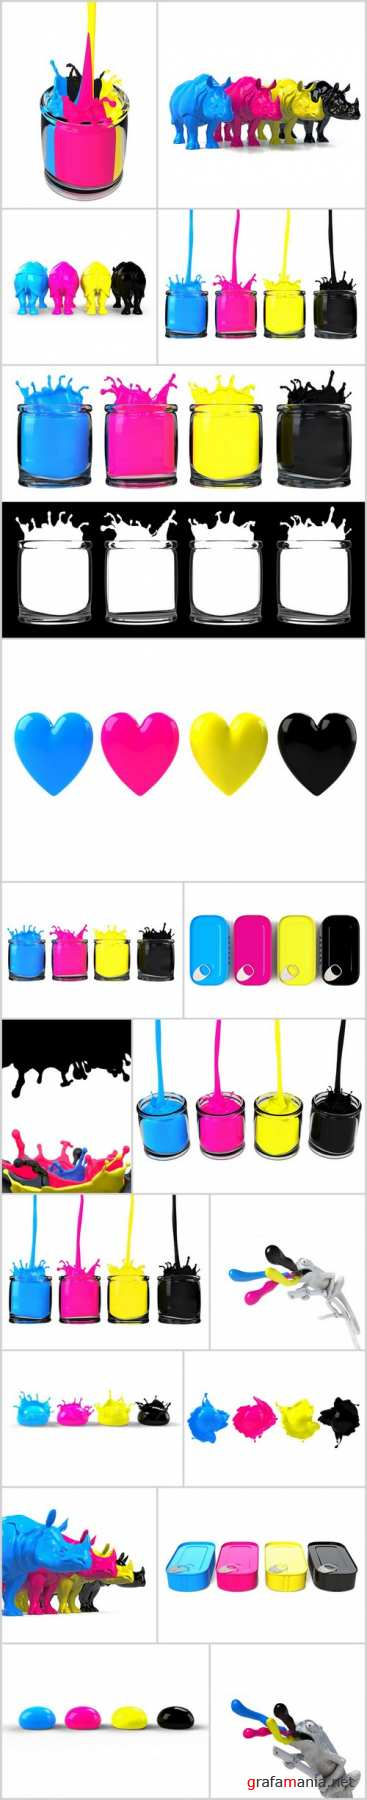 CMYK Paints, Style and Colors - 18xUHQ JPEG